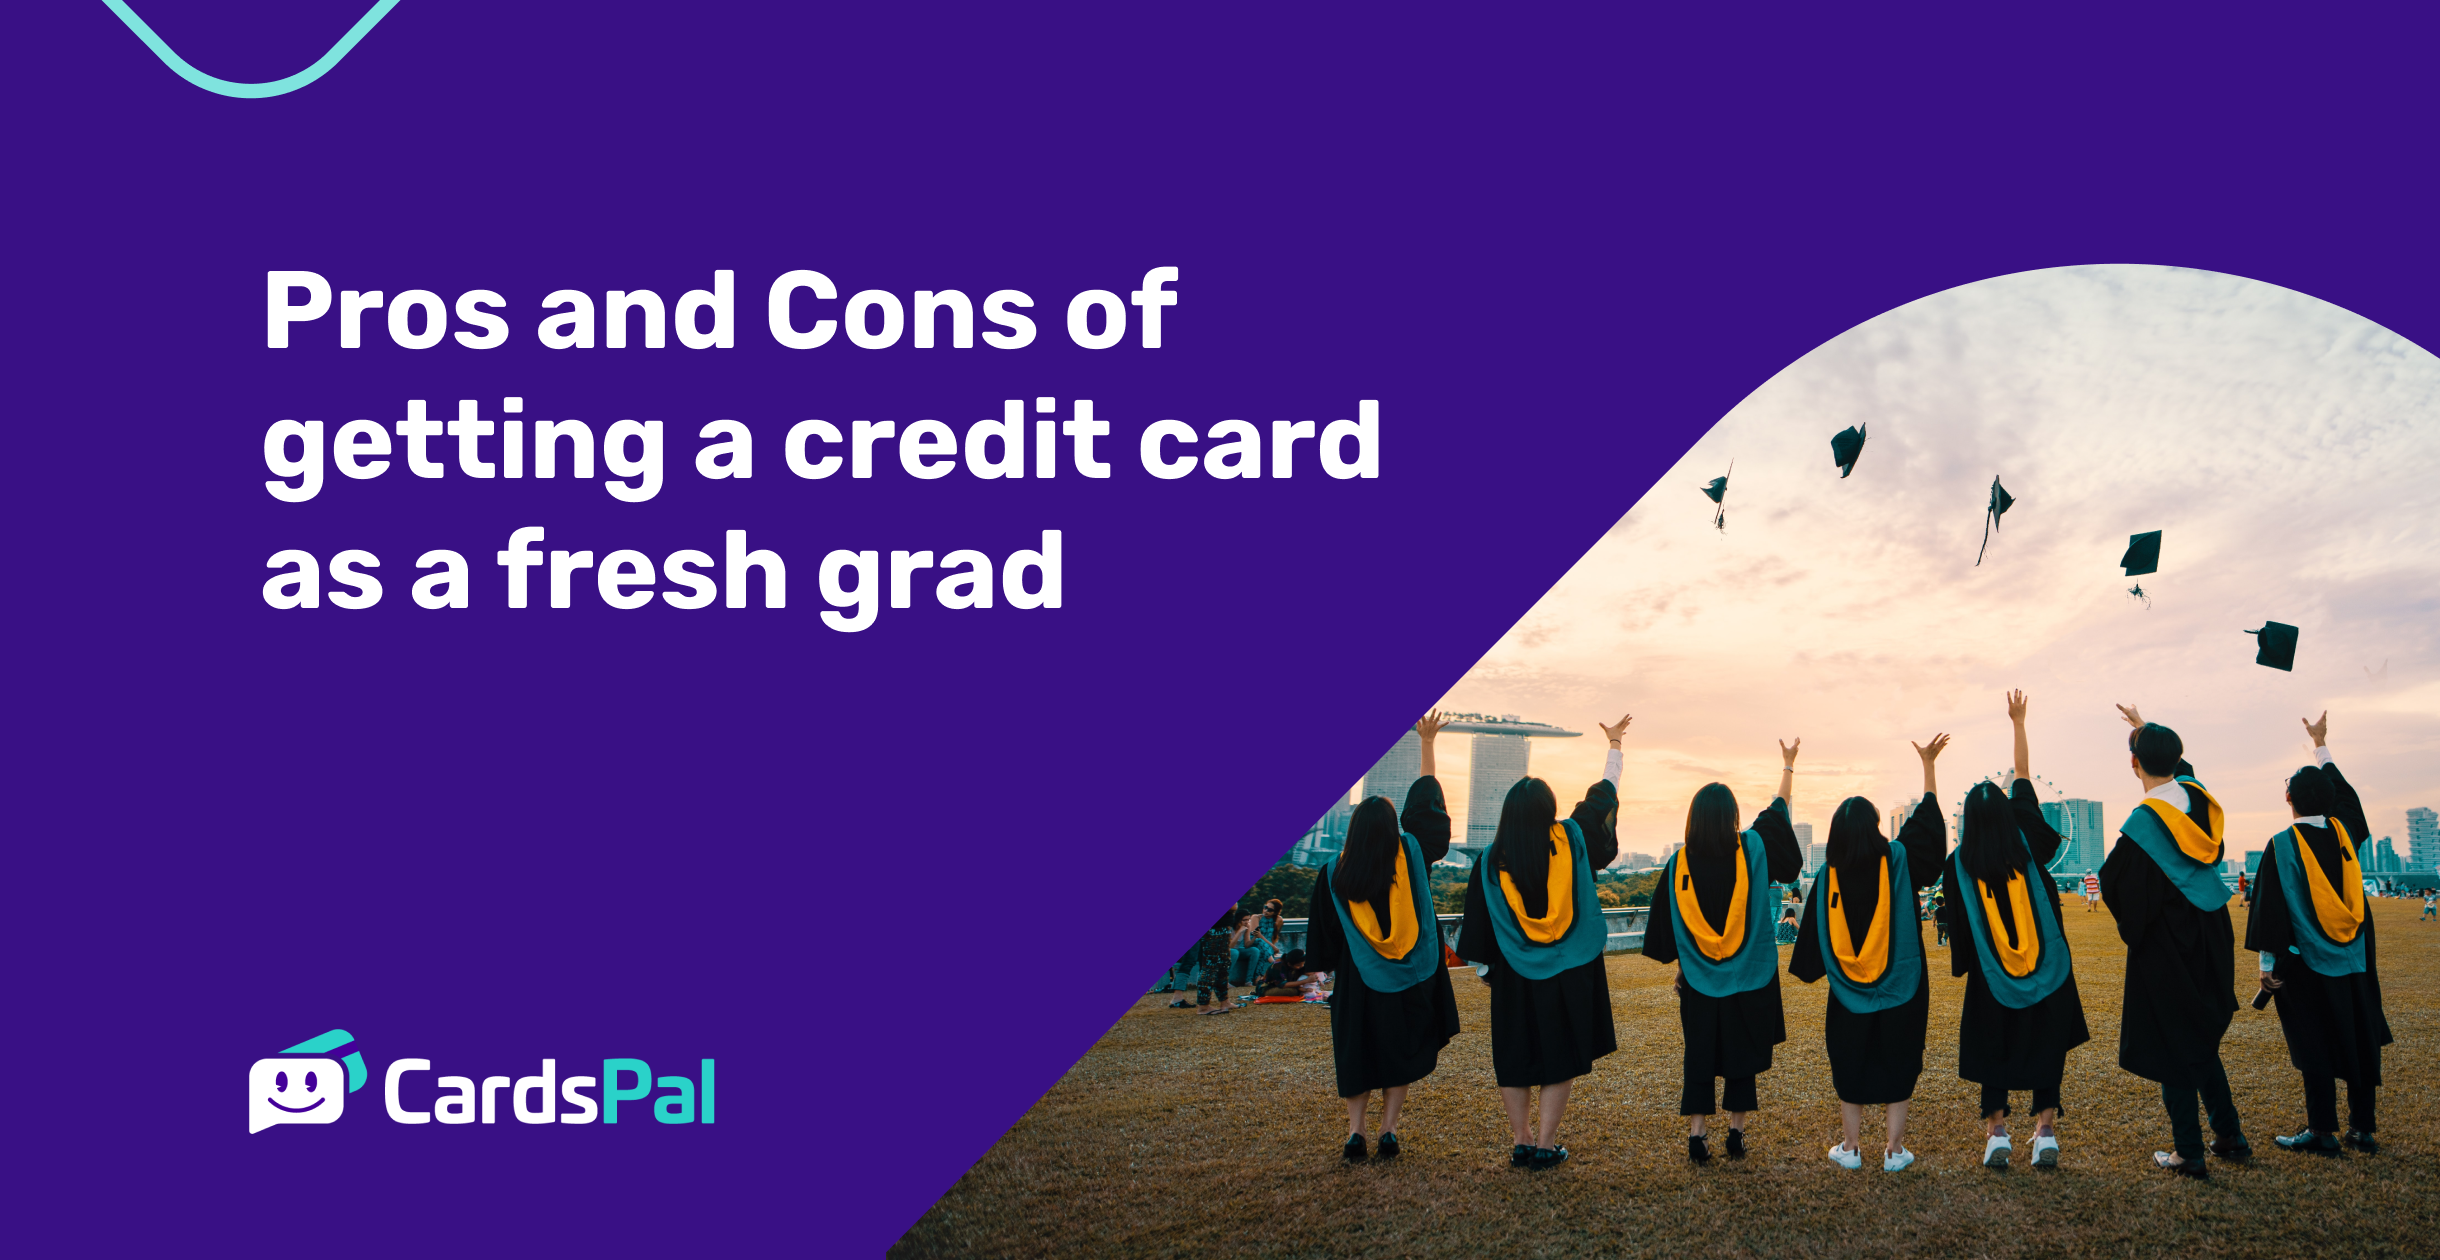 Pros and Cons of getting a credit card as a fresh grad